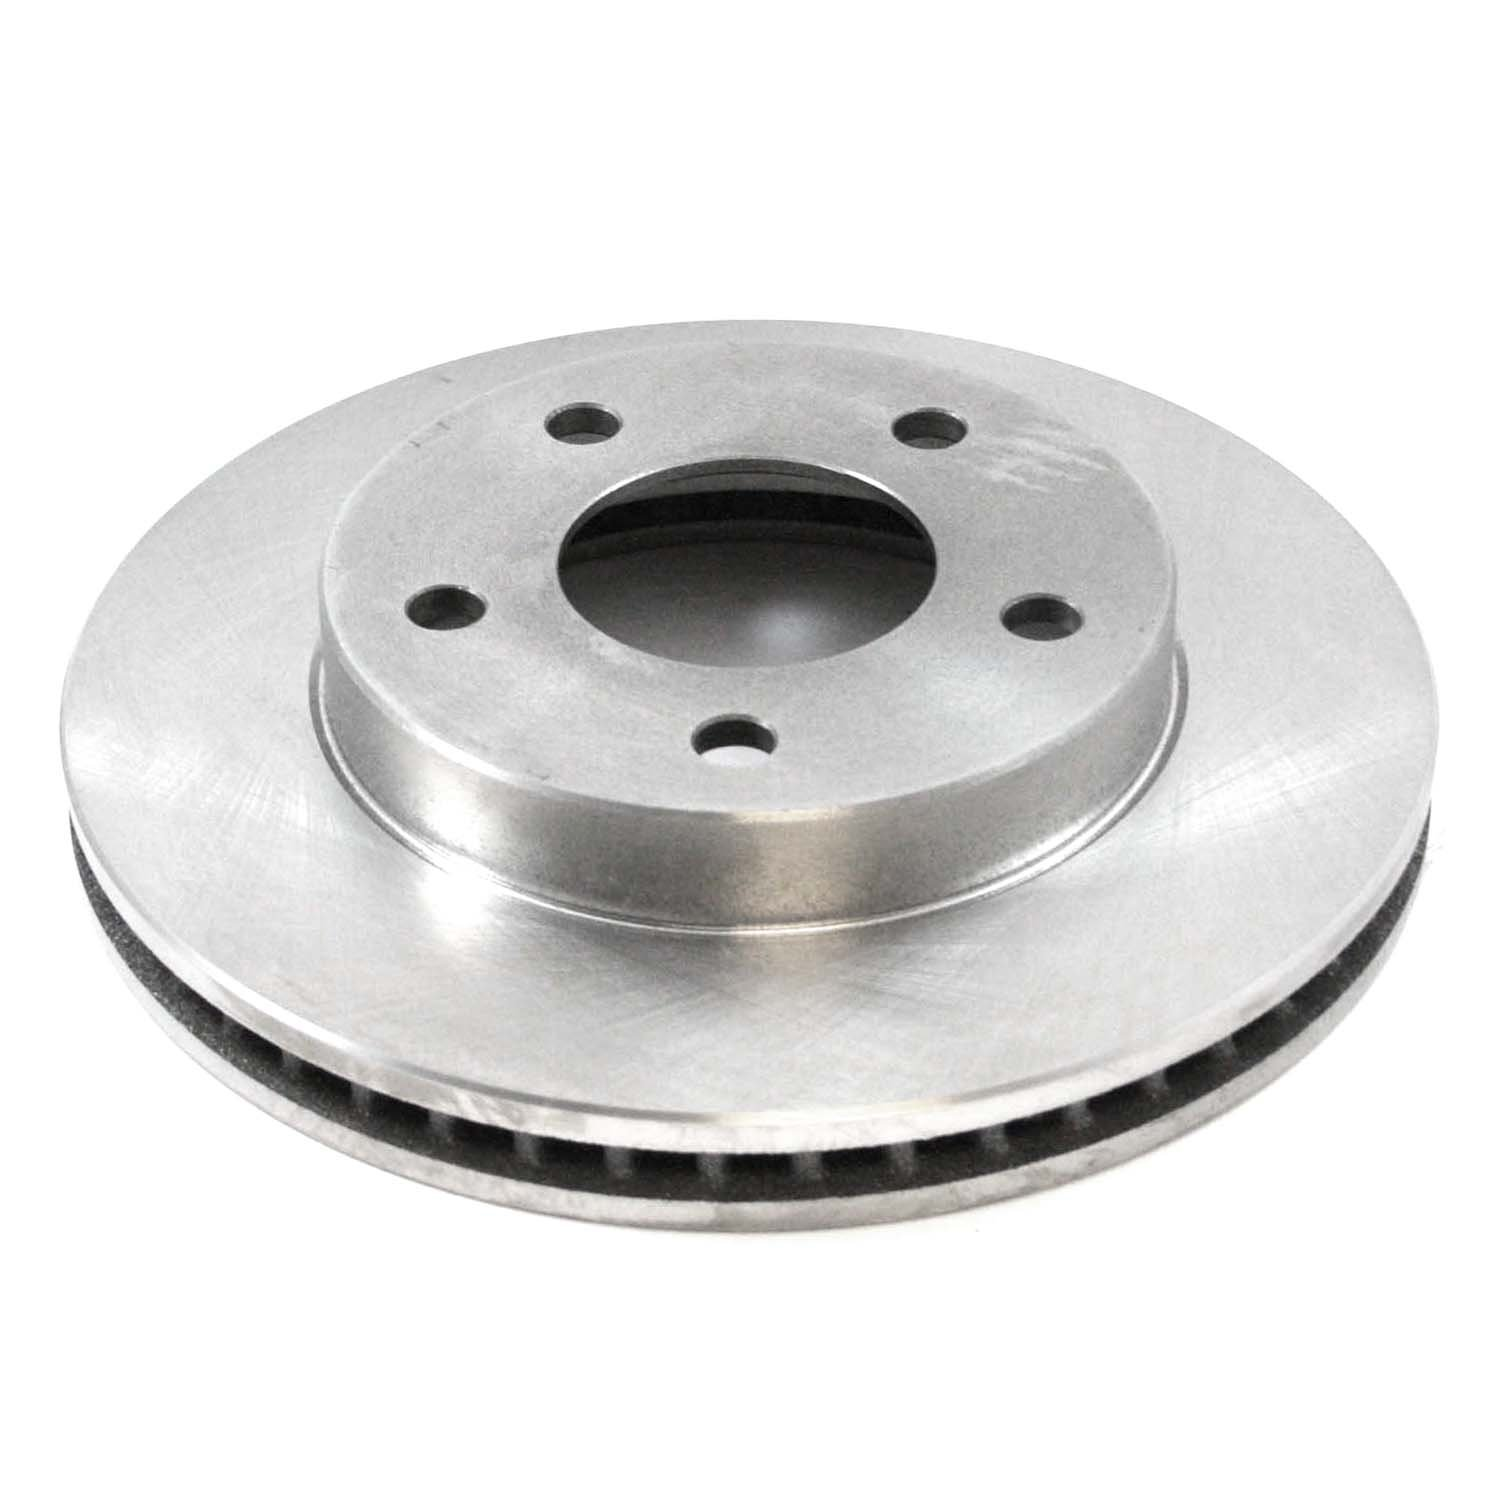 DuraGo BR5552 Front Vented Disc Brake Rotor